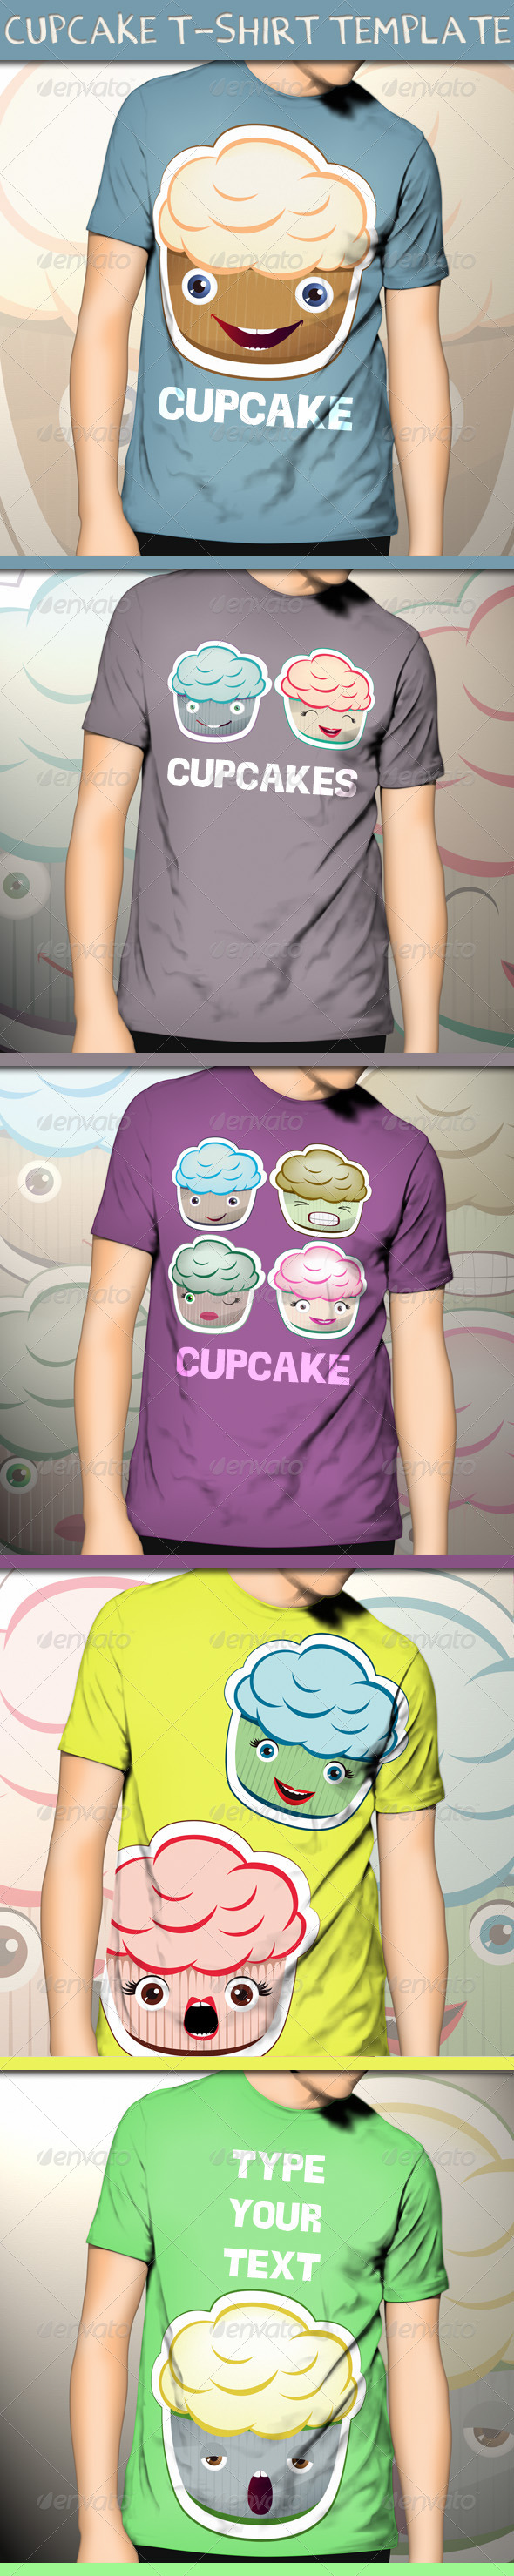 GraphicRiver Cupcake T-Shirt Template 4592455